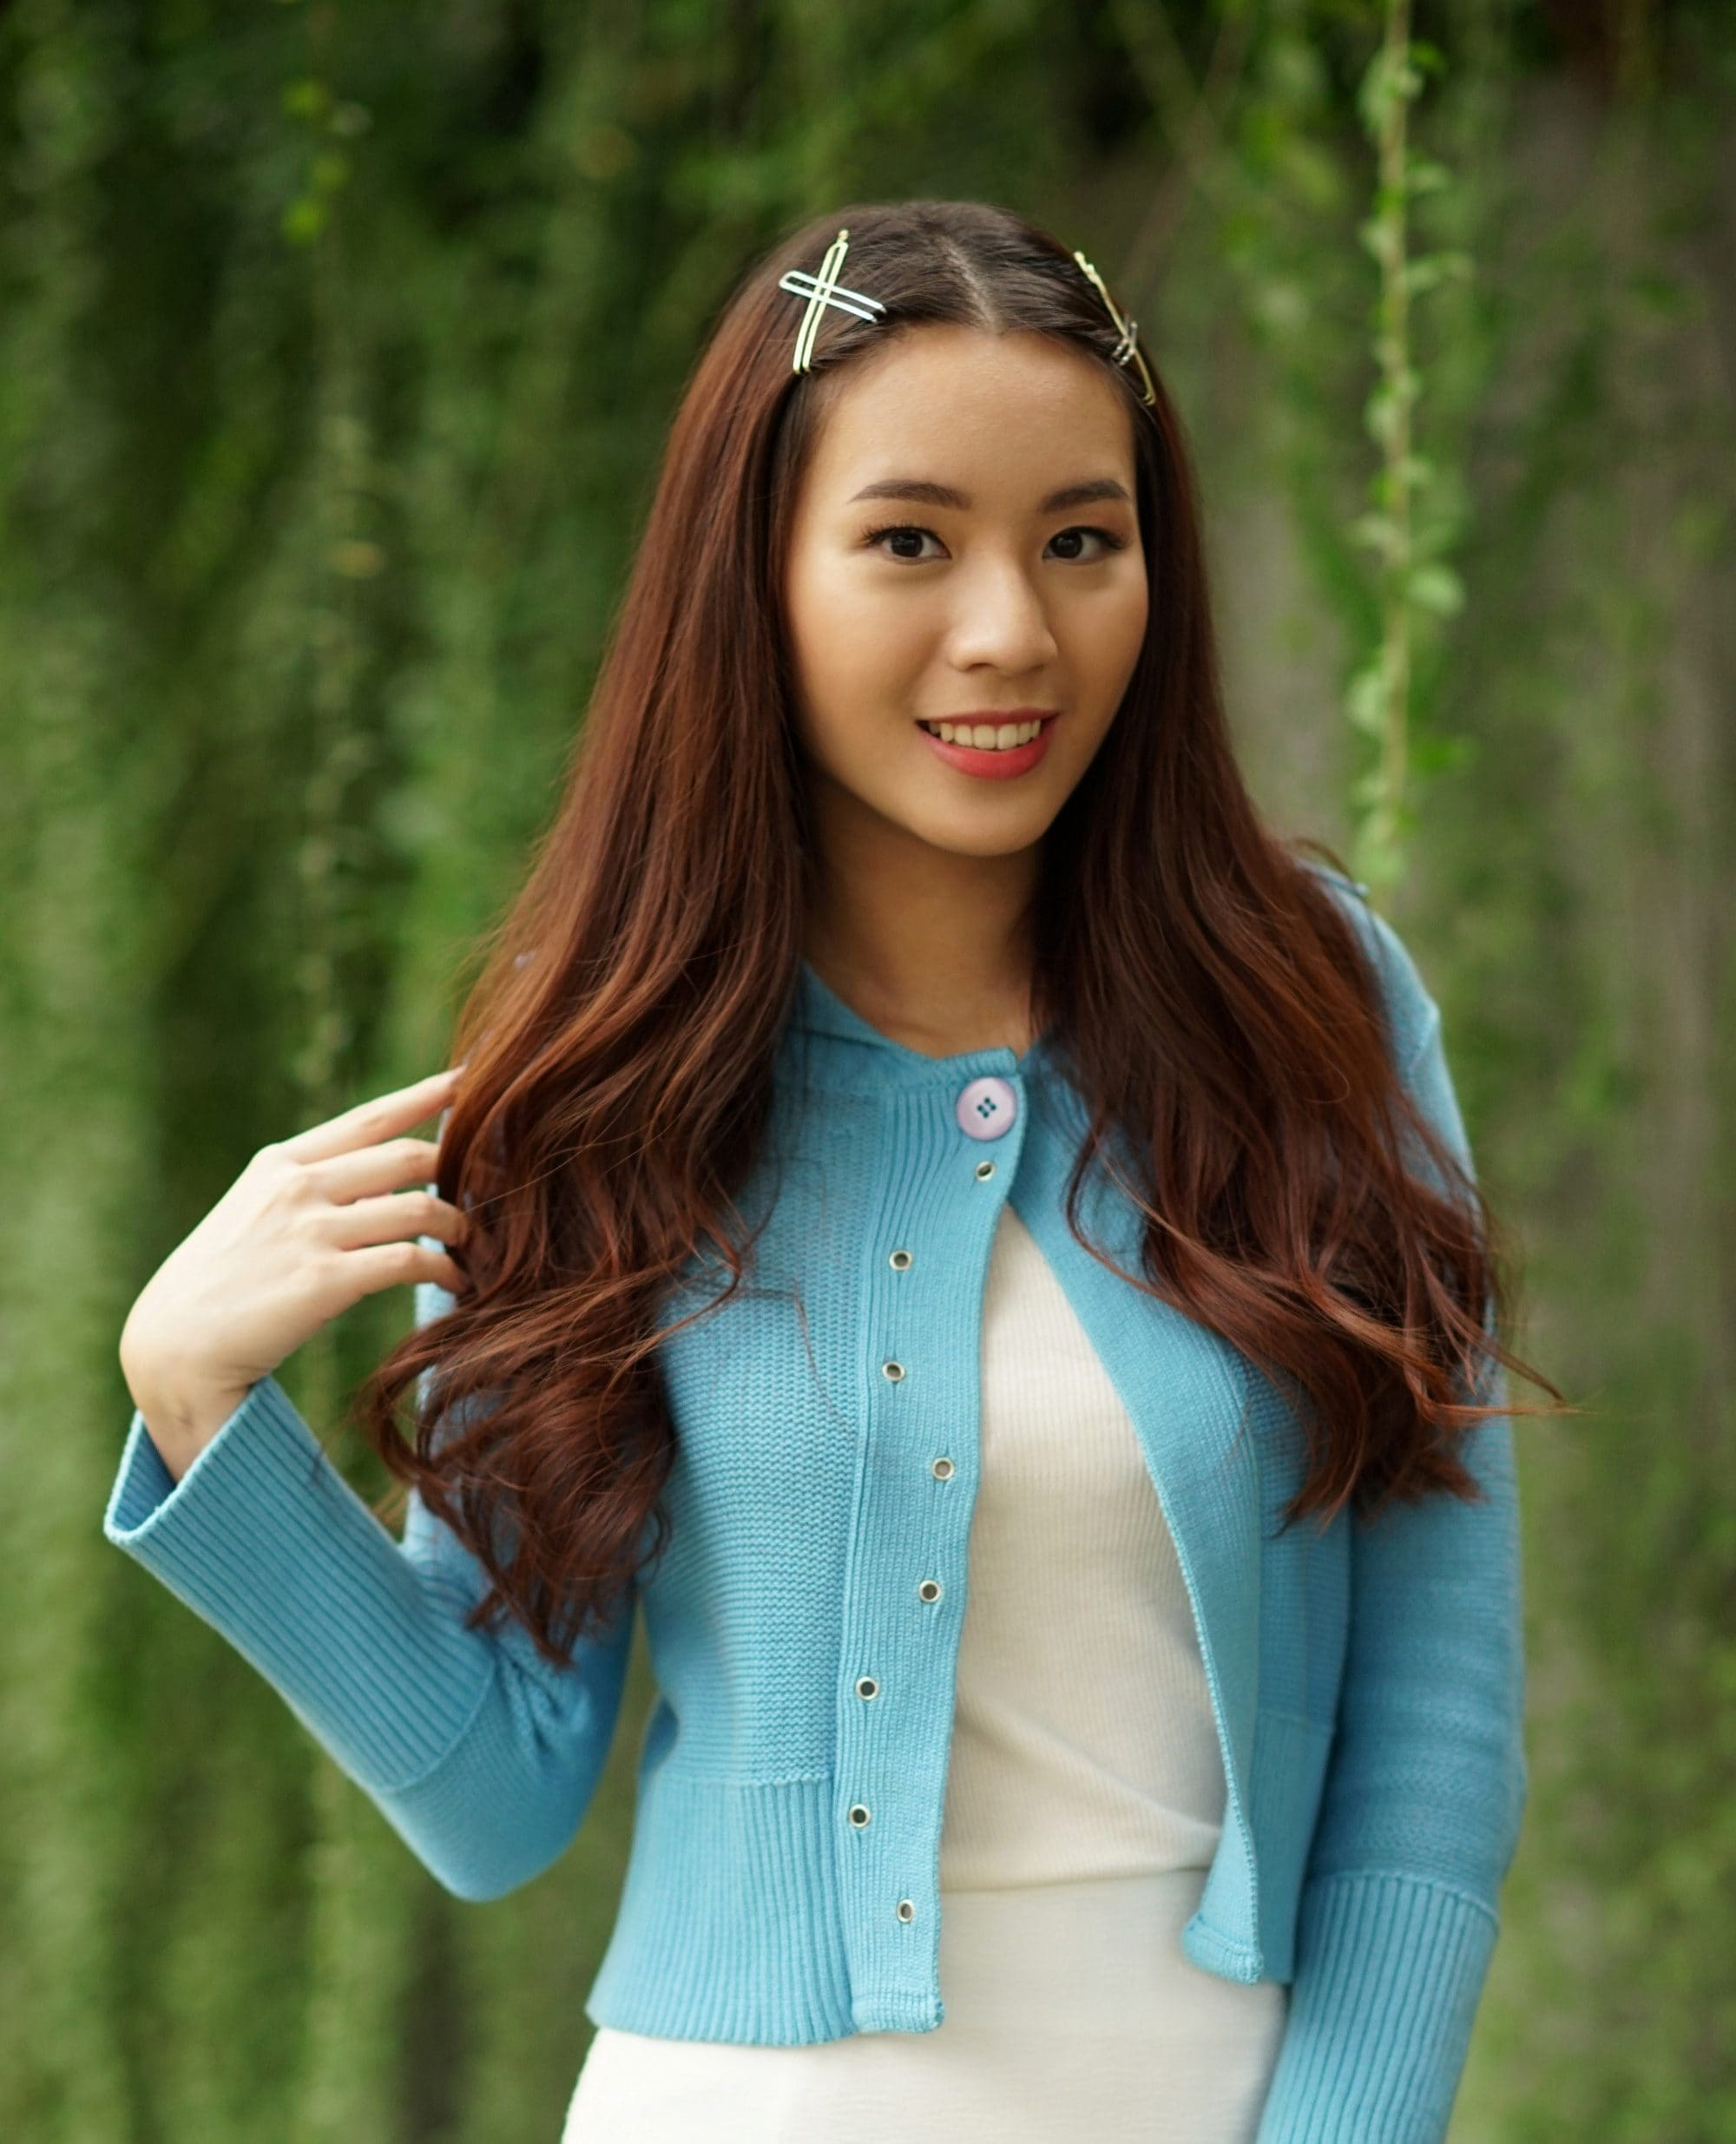 Heat protectant: Asian woman with long dark wavy hair with hair clips wearing a blue cardigan and white dress outdoors